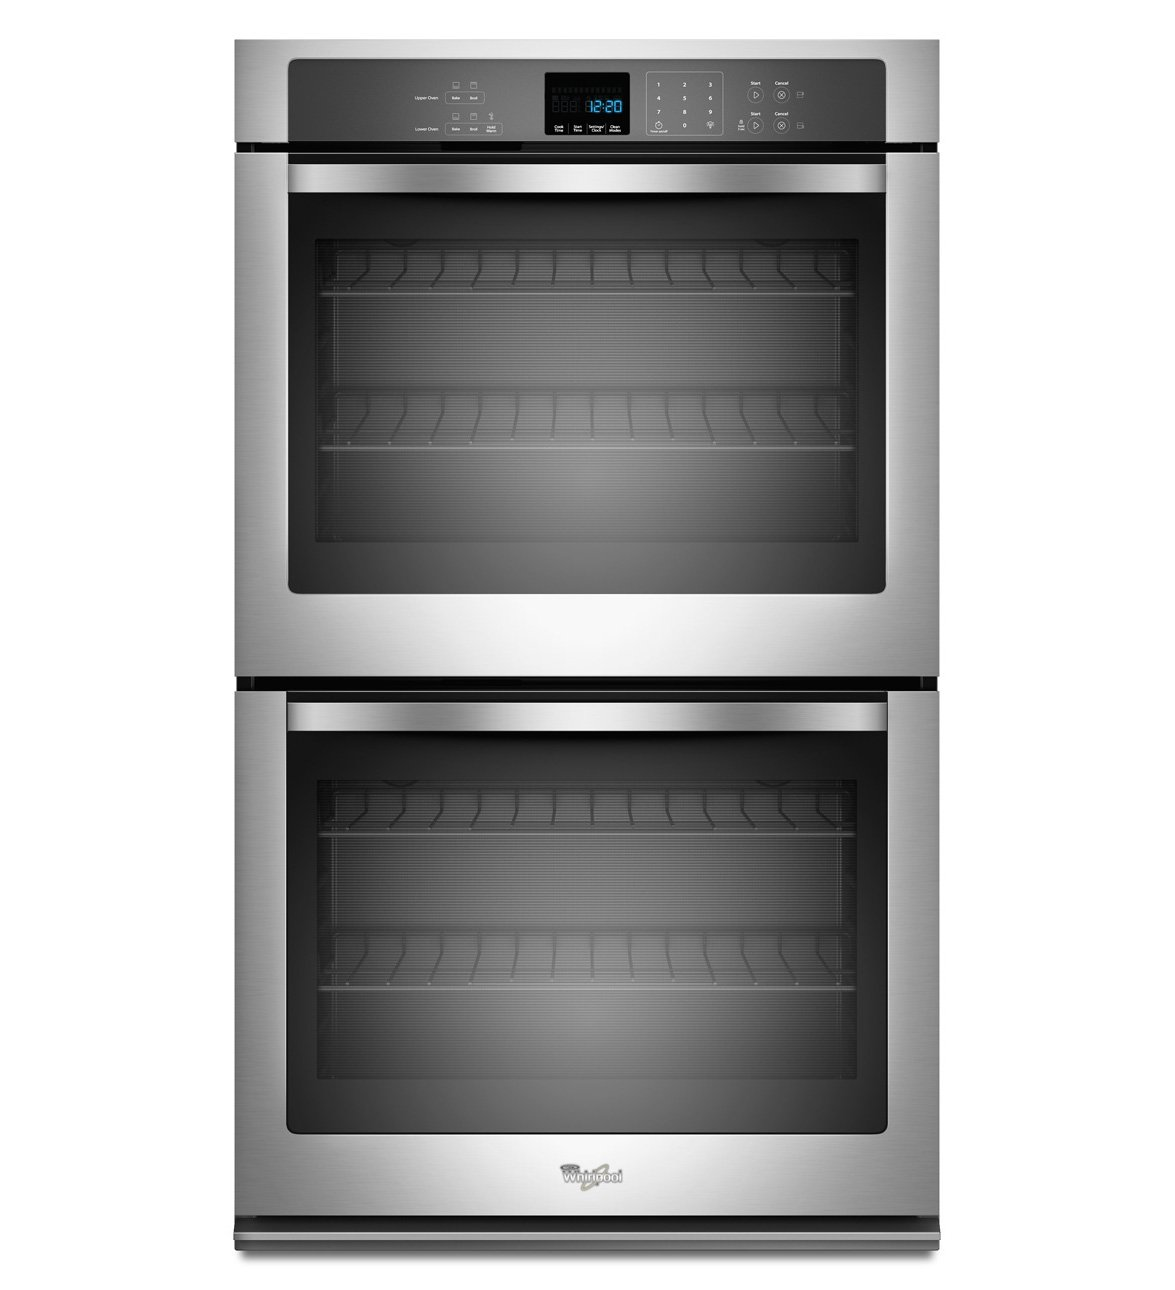 "Whirlpool WOD51EC0AS 30"" Stainless Steel Electric Double Wall Oven"